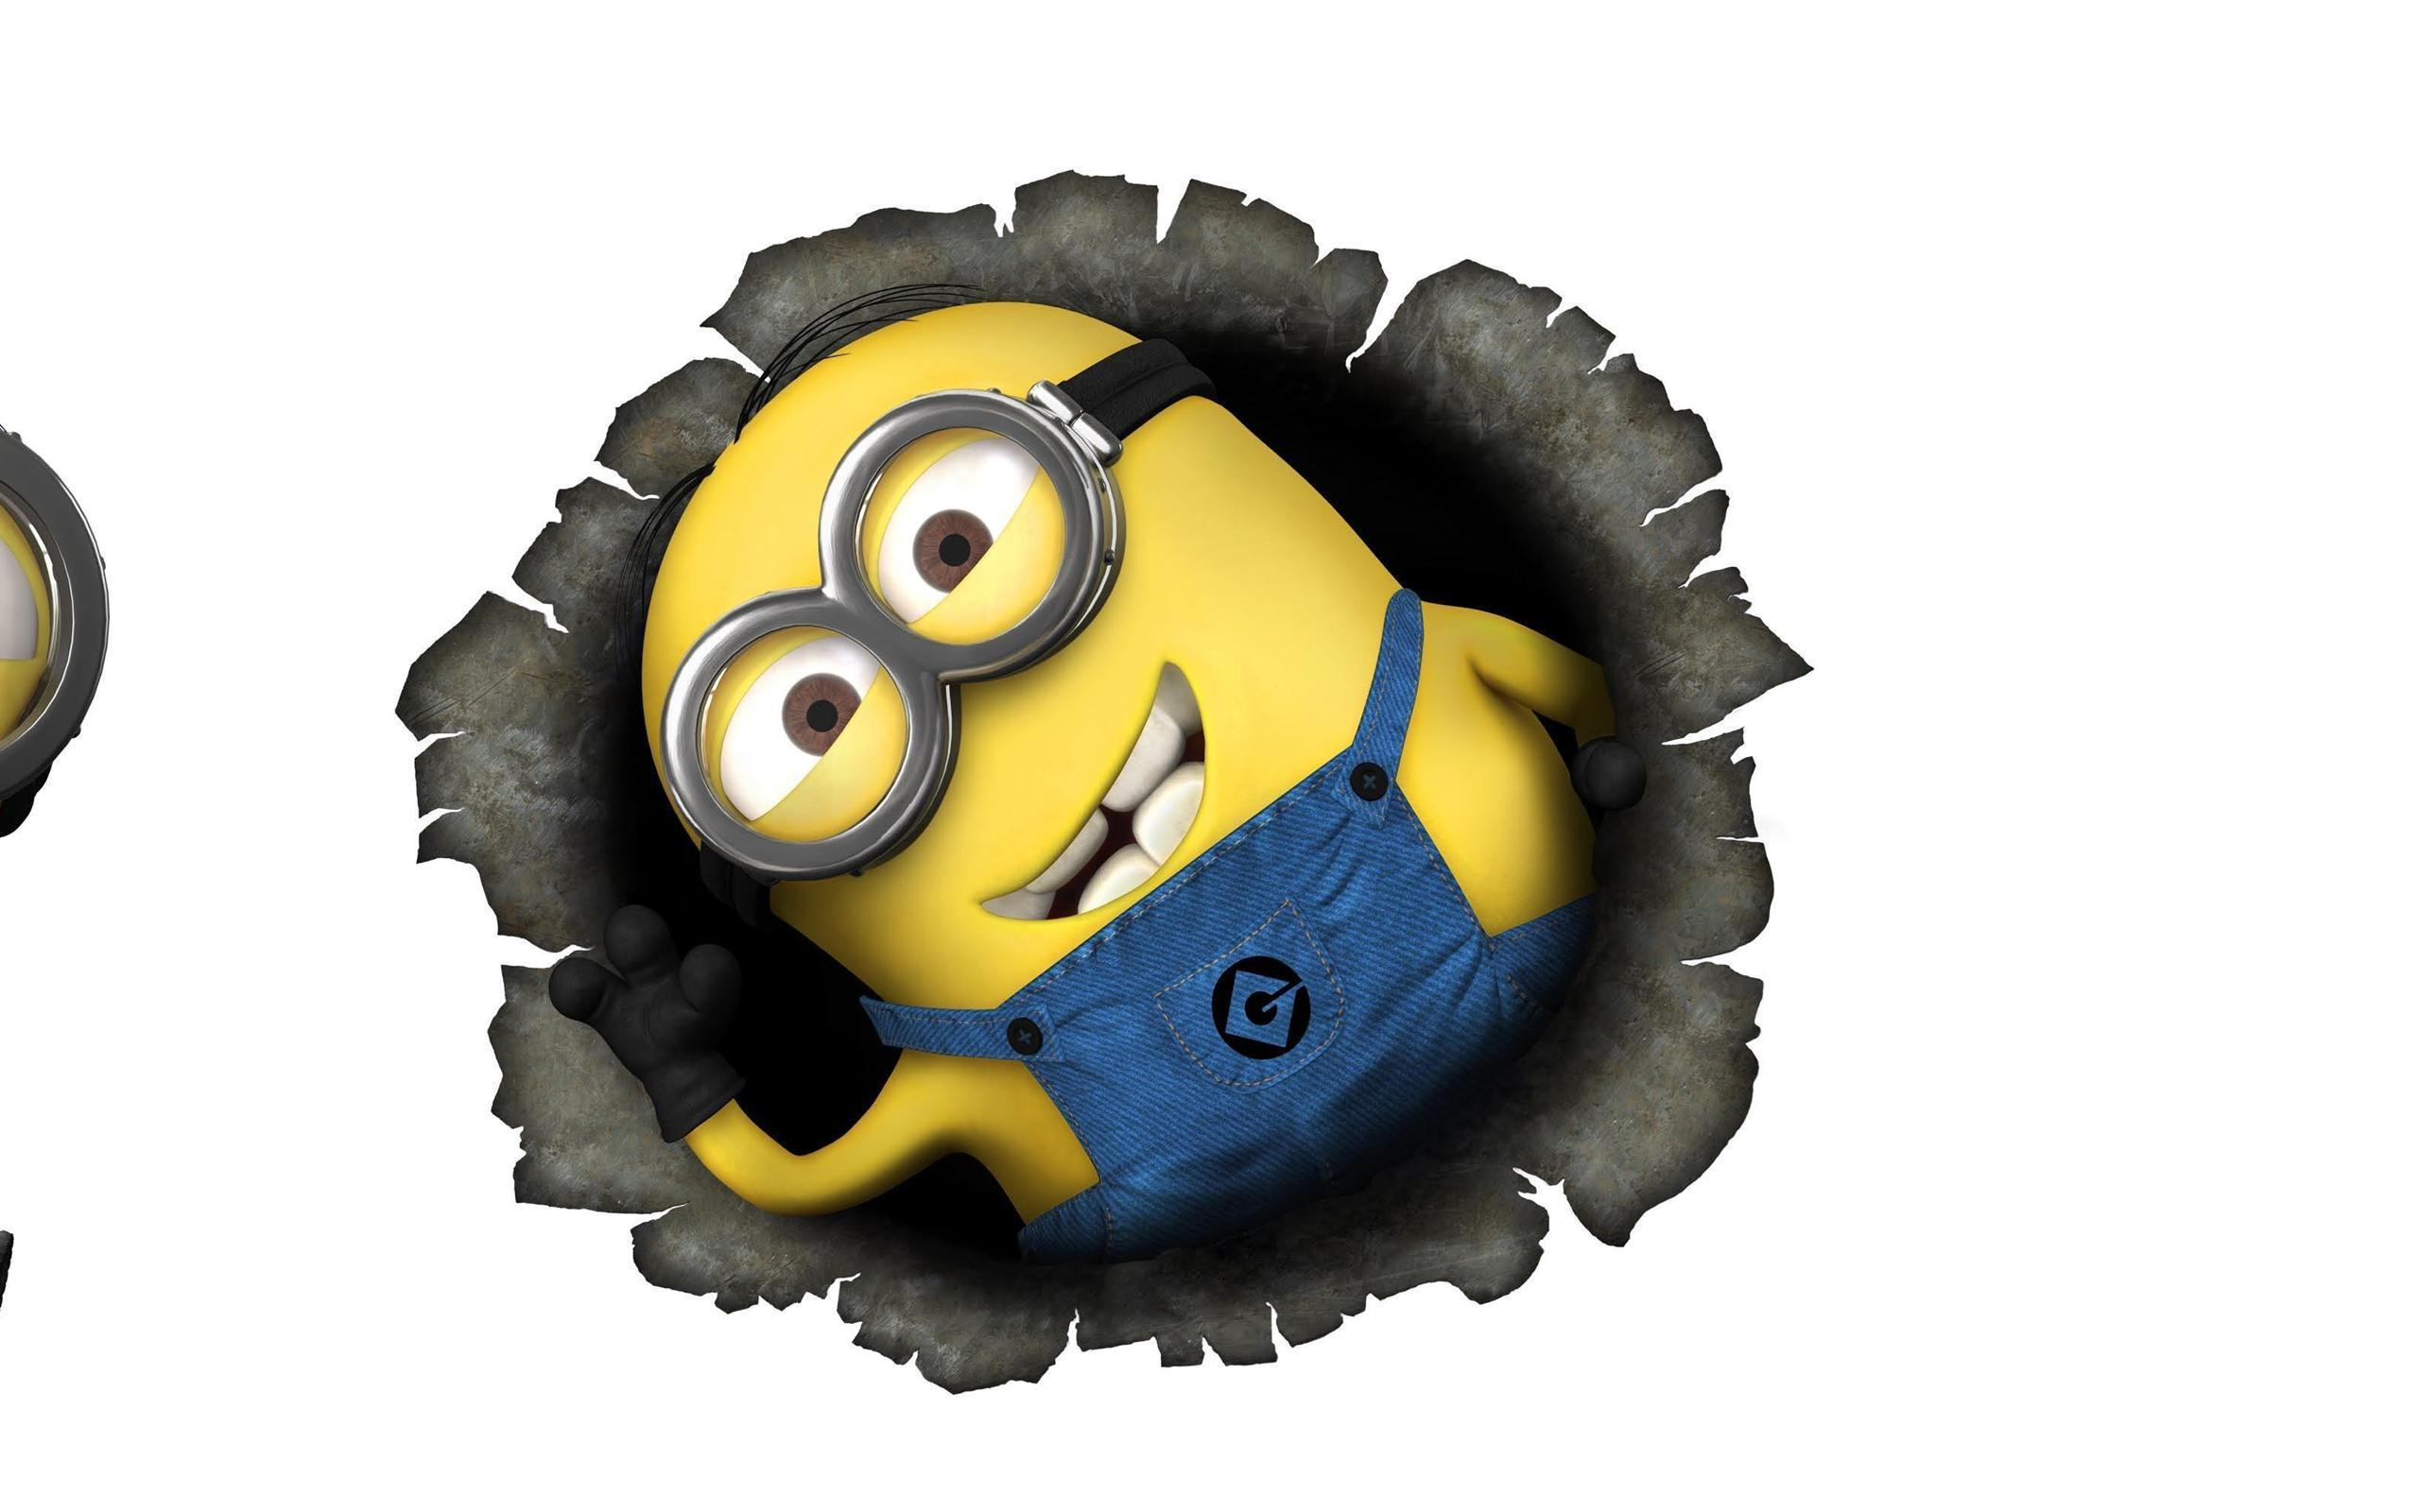 despicable me minions wallpapers - photo #4